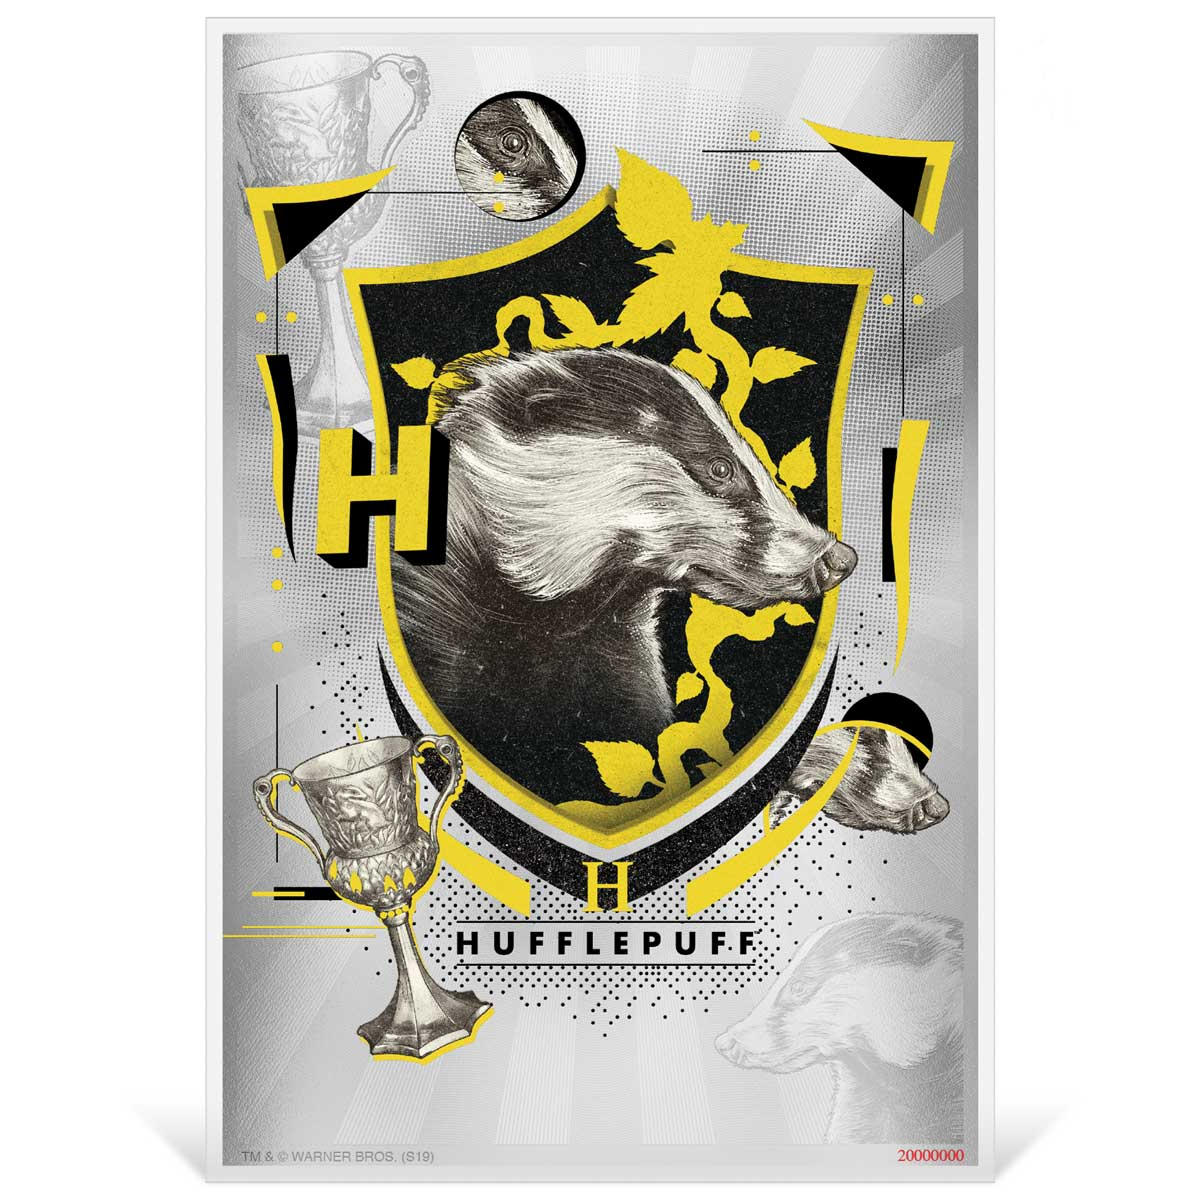 HARRY POTTER HOUSES: HUFFLEPUFF 2020 Niue 5g silver foil